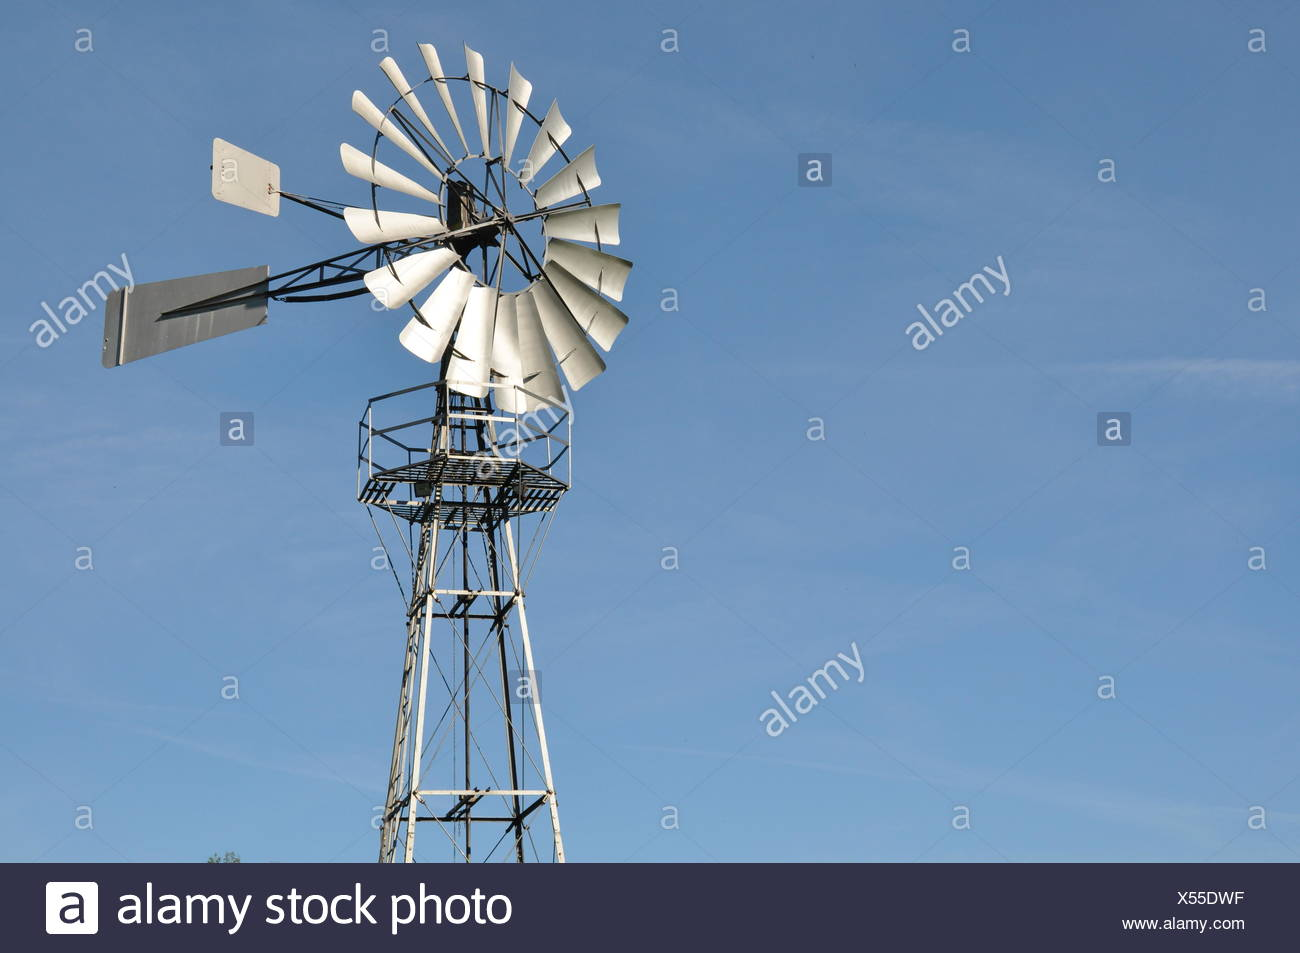 windmill wind energy unclouded - Stock Image